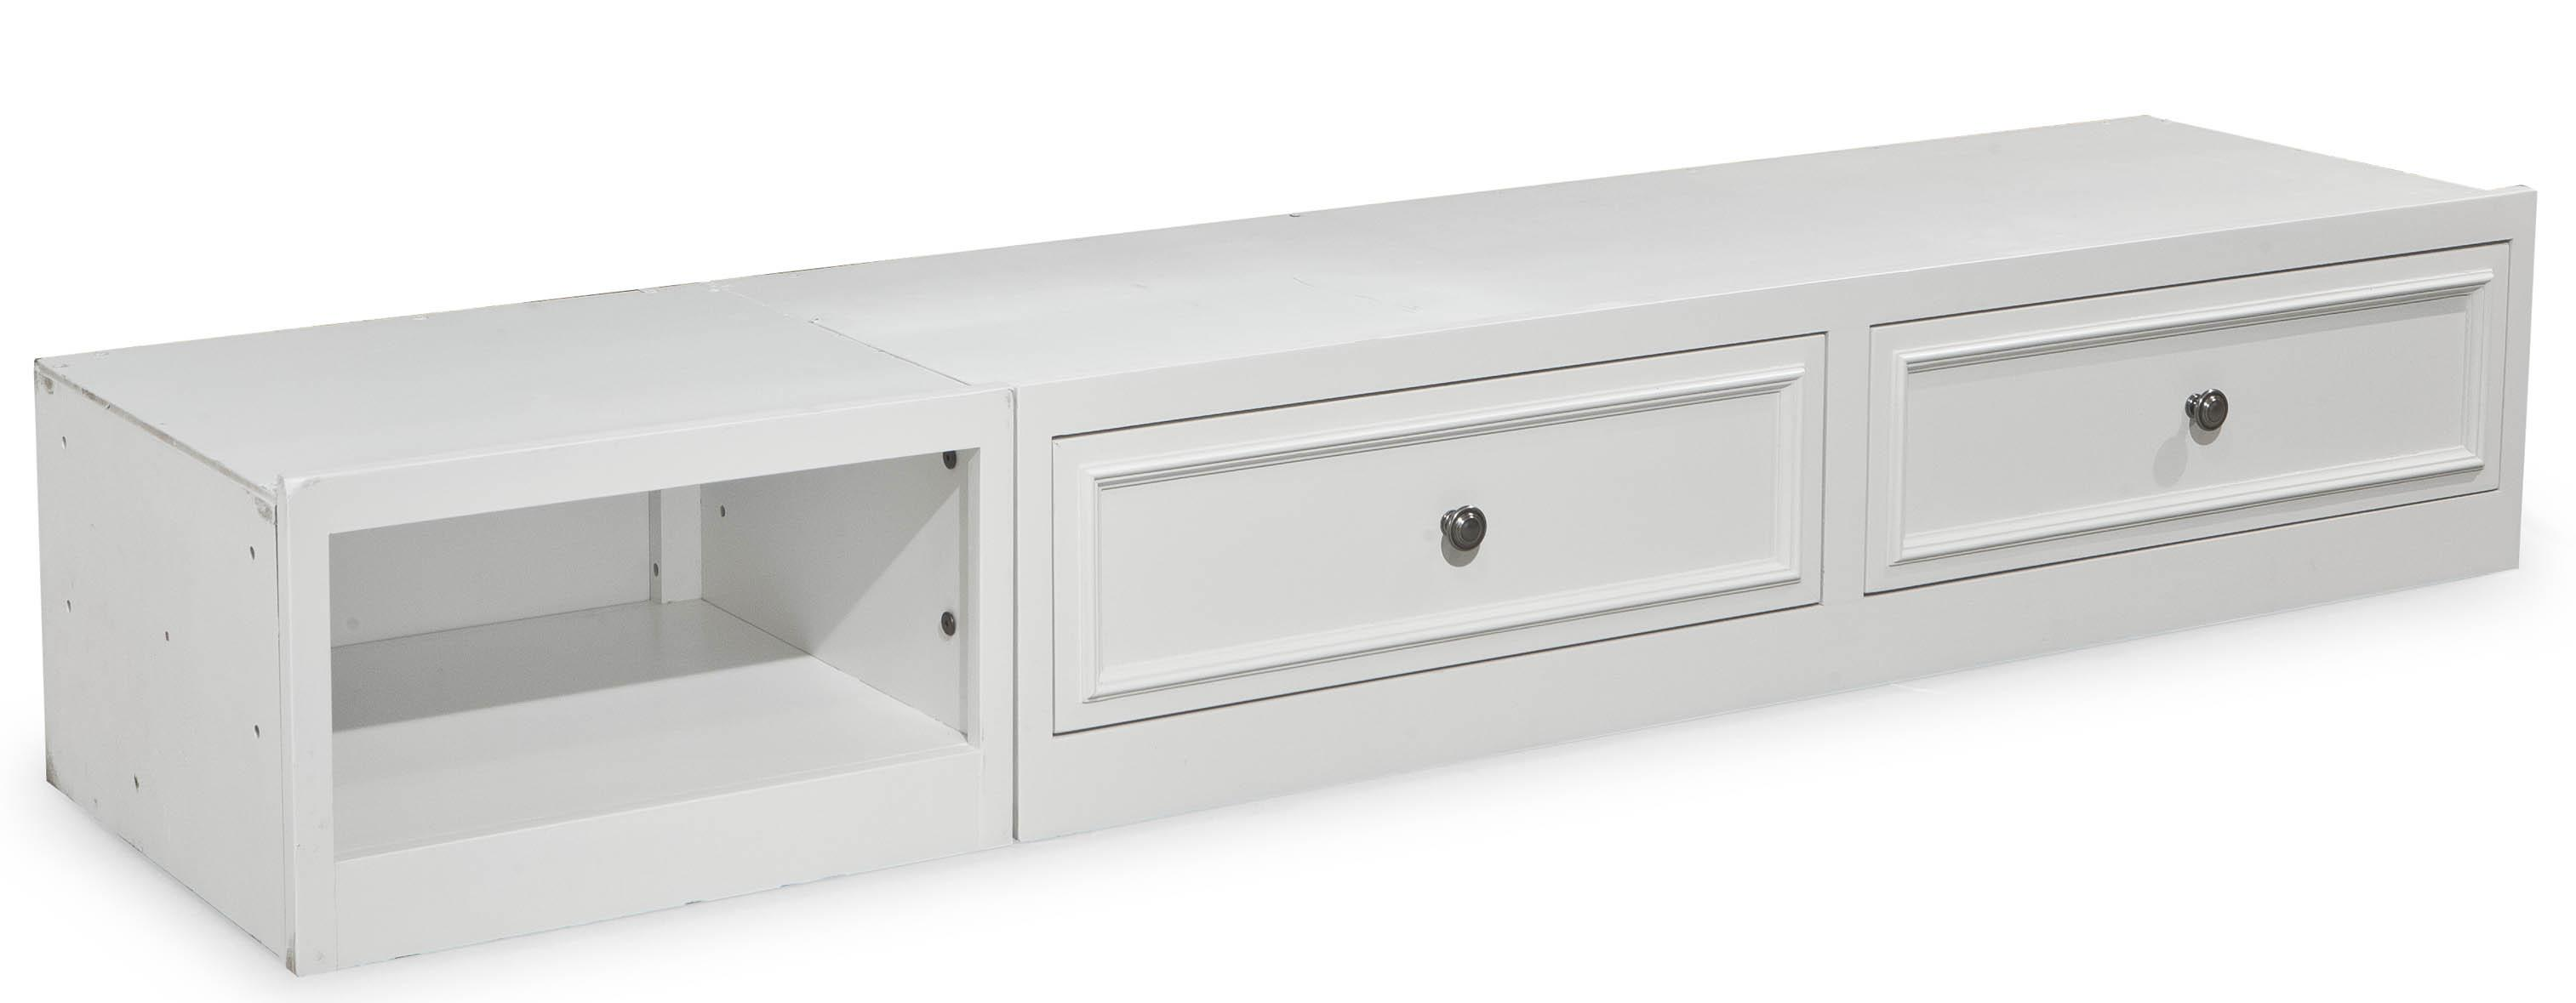 snow babies bed white of dolce underbed storage mega naples under drawers picture usa baby